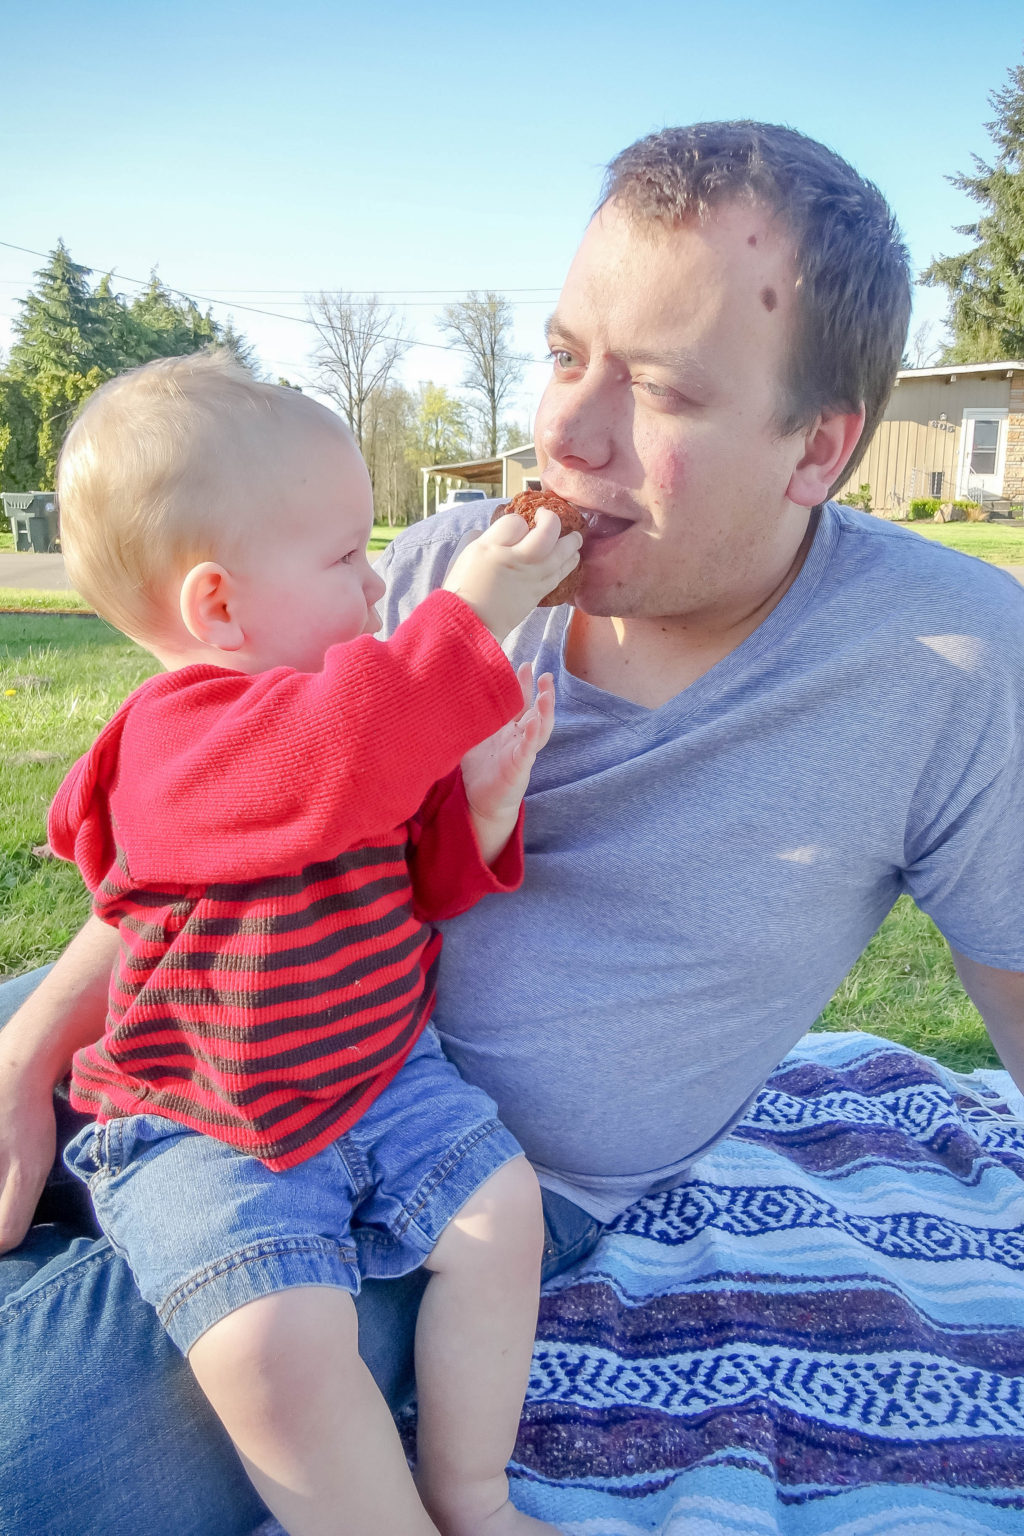 Toddler boy feeding dad a muffin outdoors on a picnic blanket